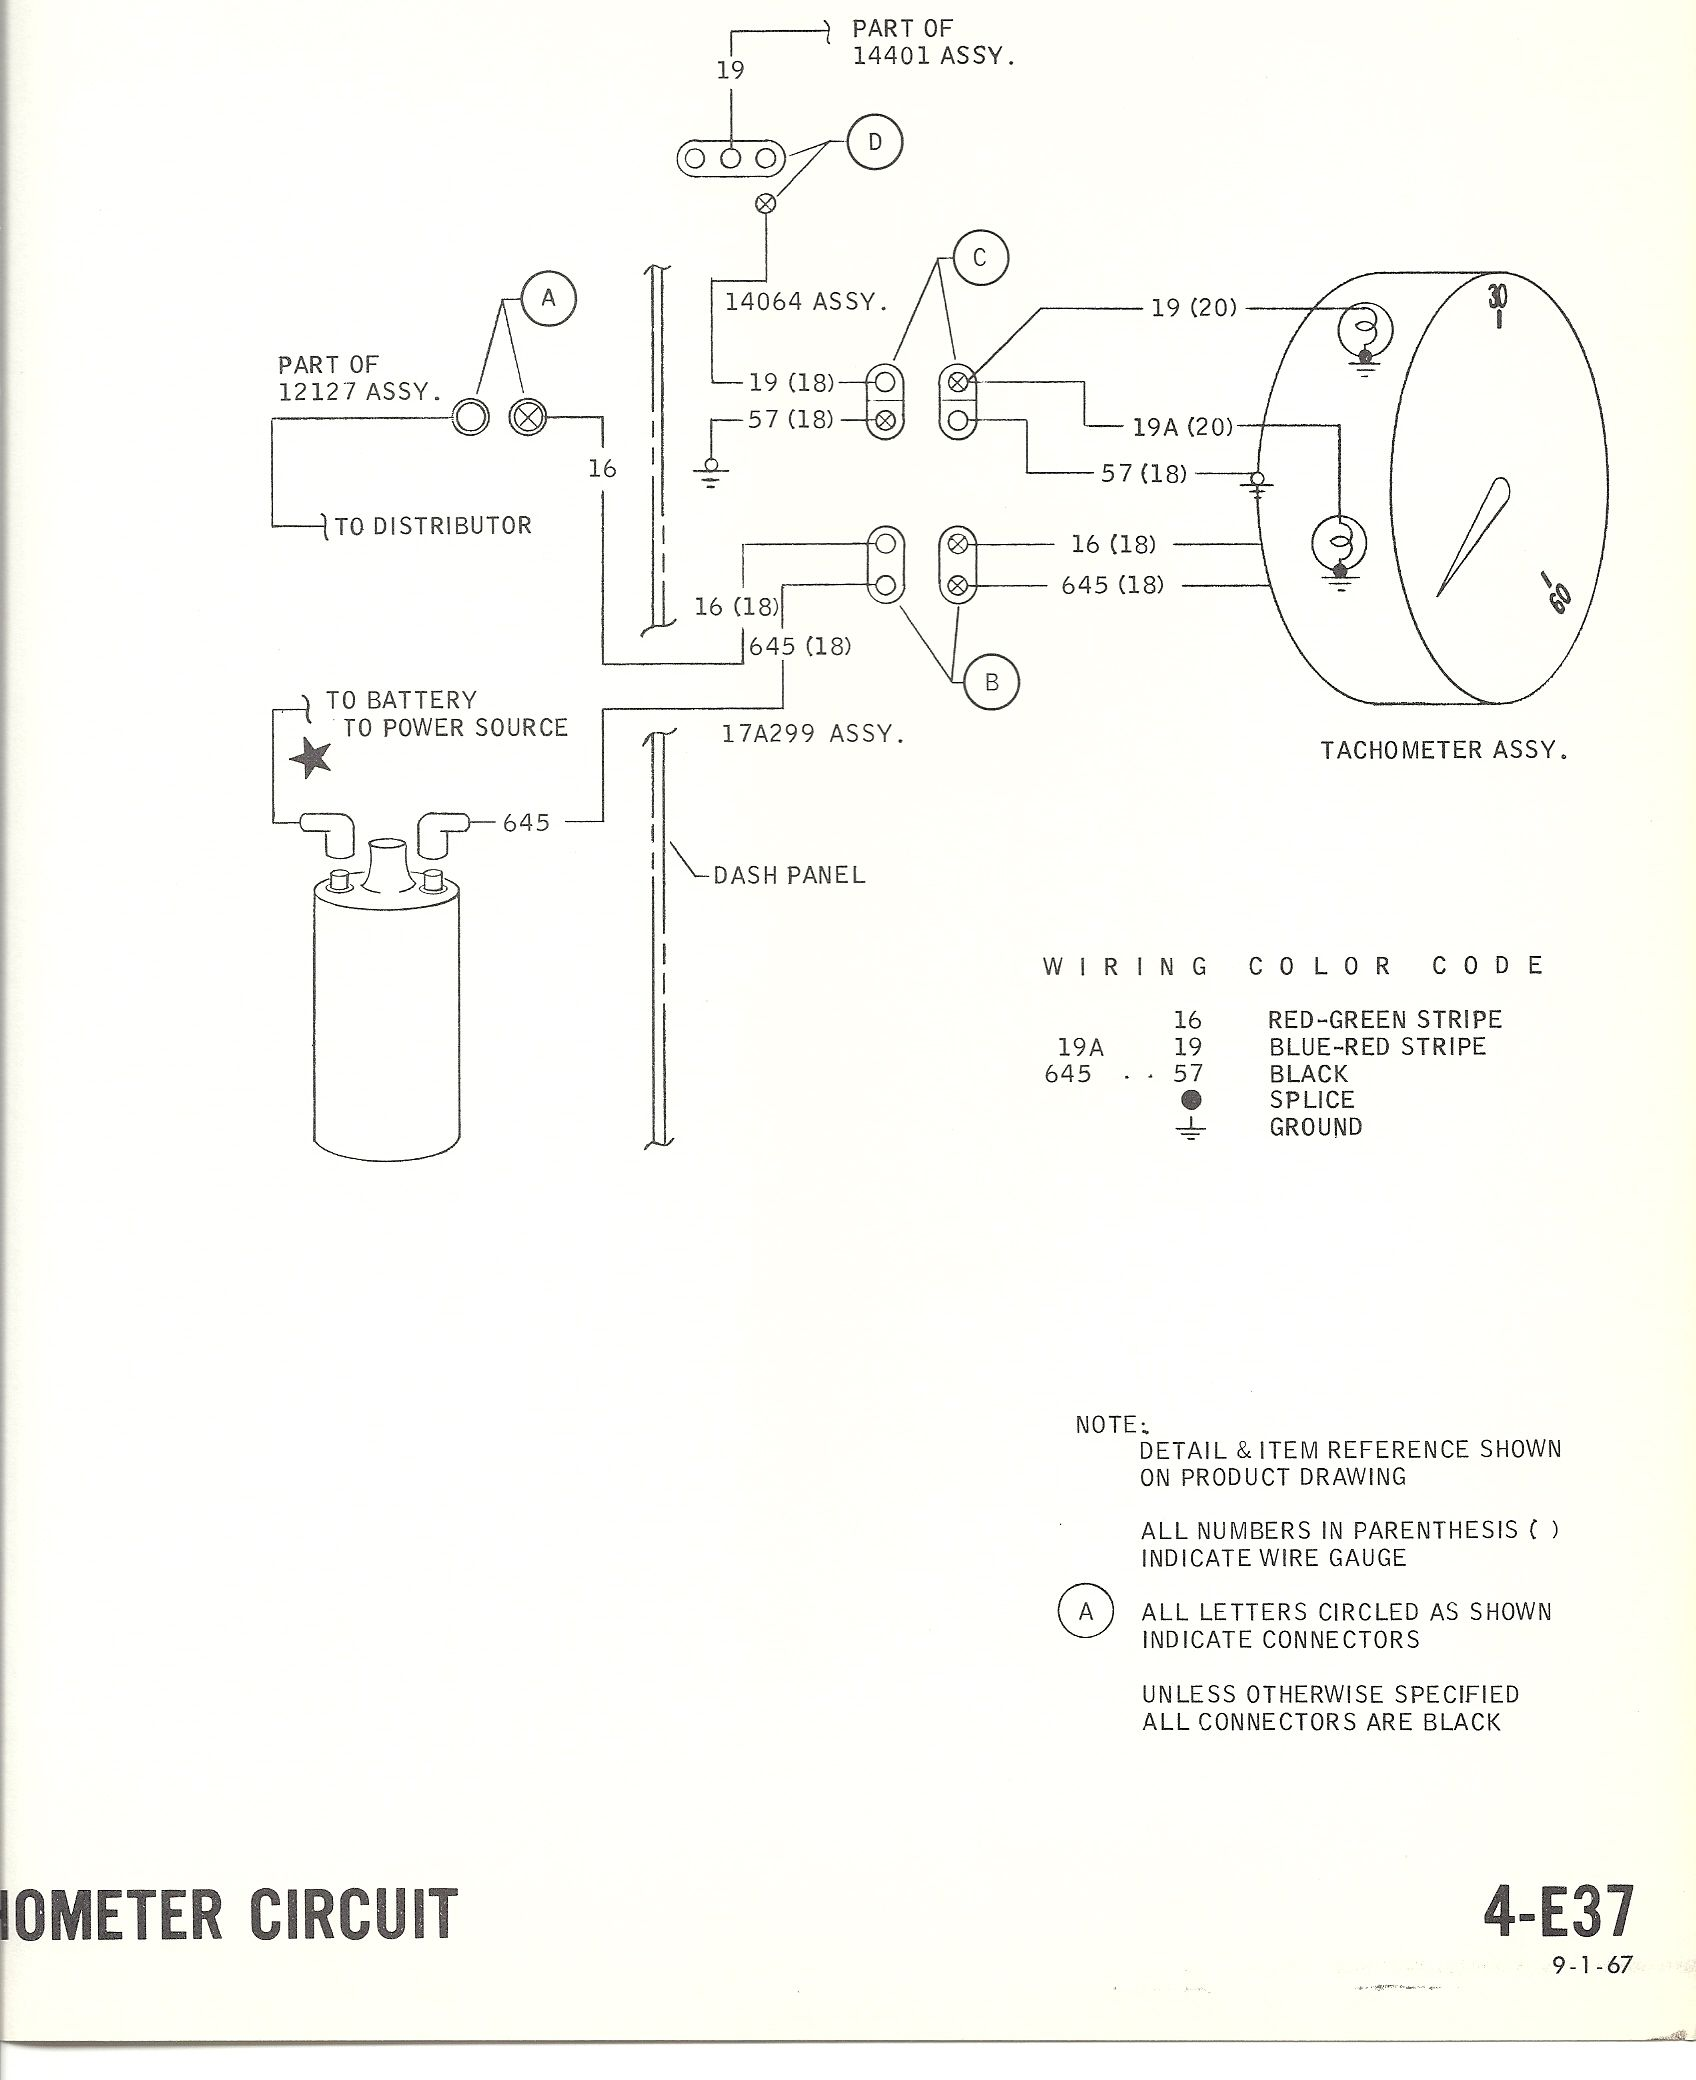 2b2f8e488a4c6a6b870c00f5af30de6c 1967 mustang wiring to tachometer 1968 mustang wiring 5 tachometer wiring diagram at panicattacktreatment.co